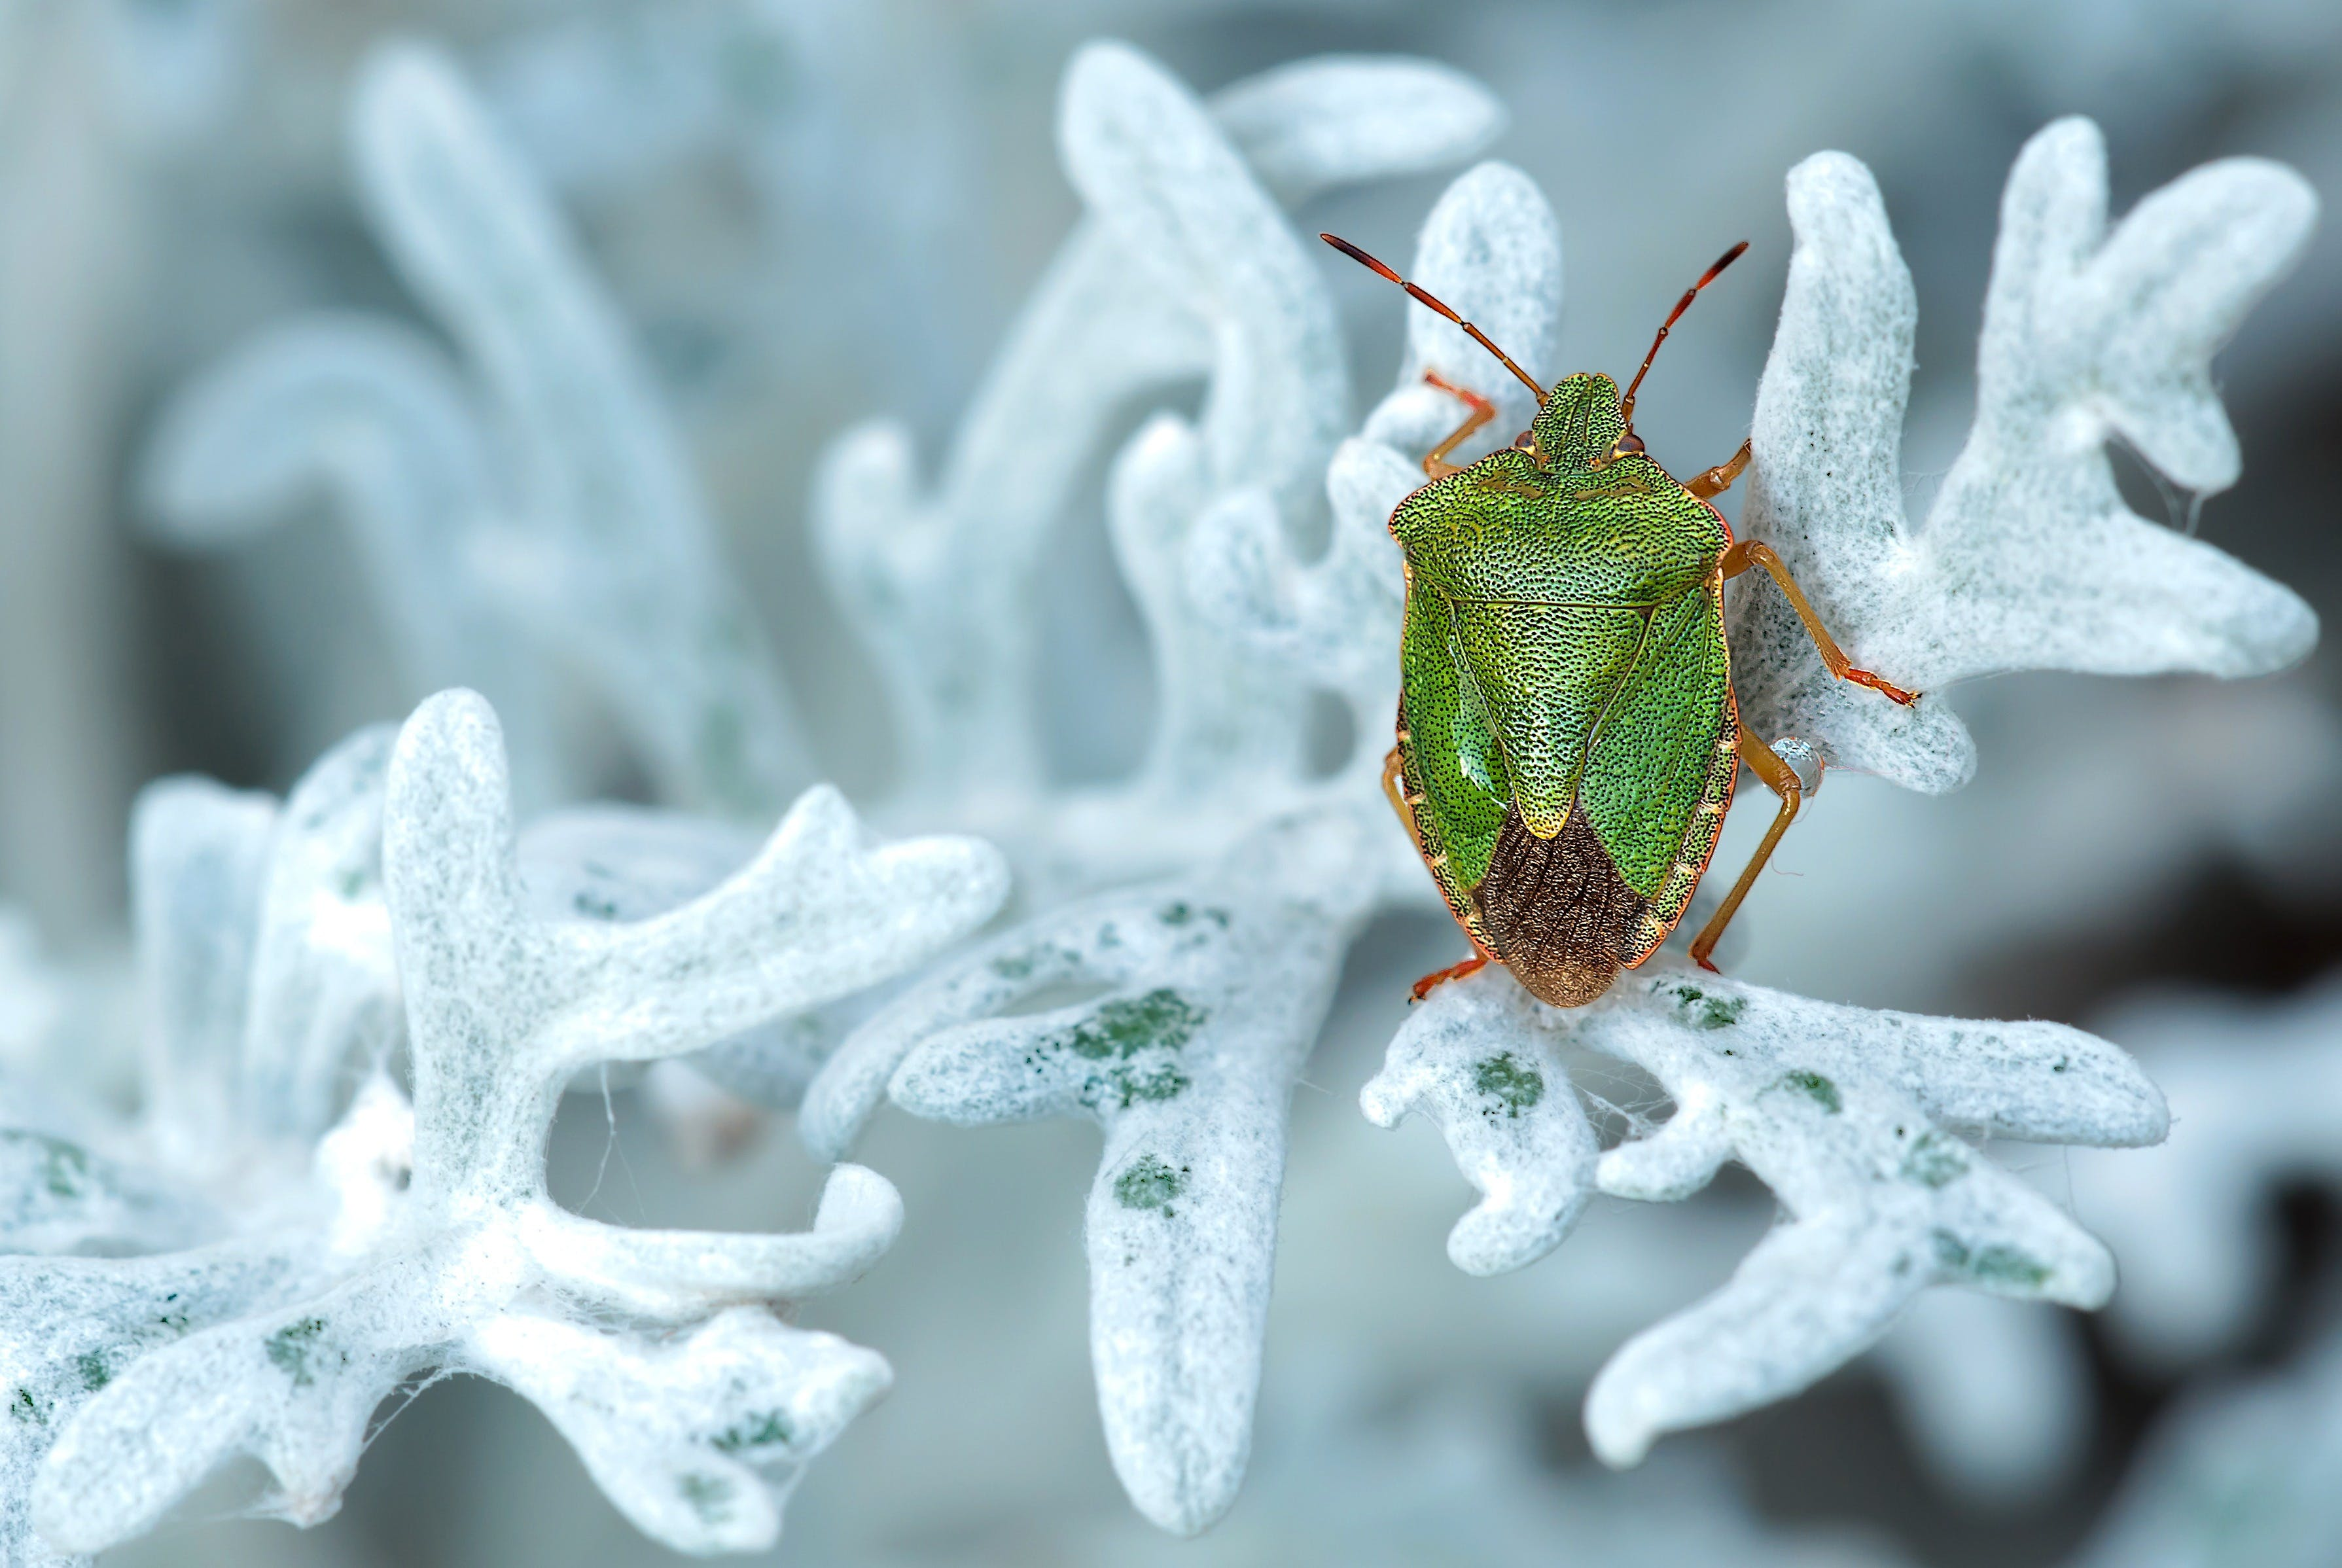 Green and Brown Bug on White Leaf